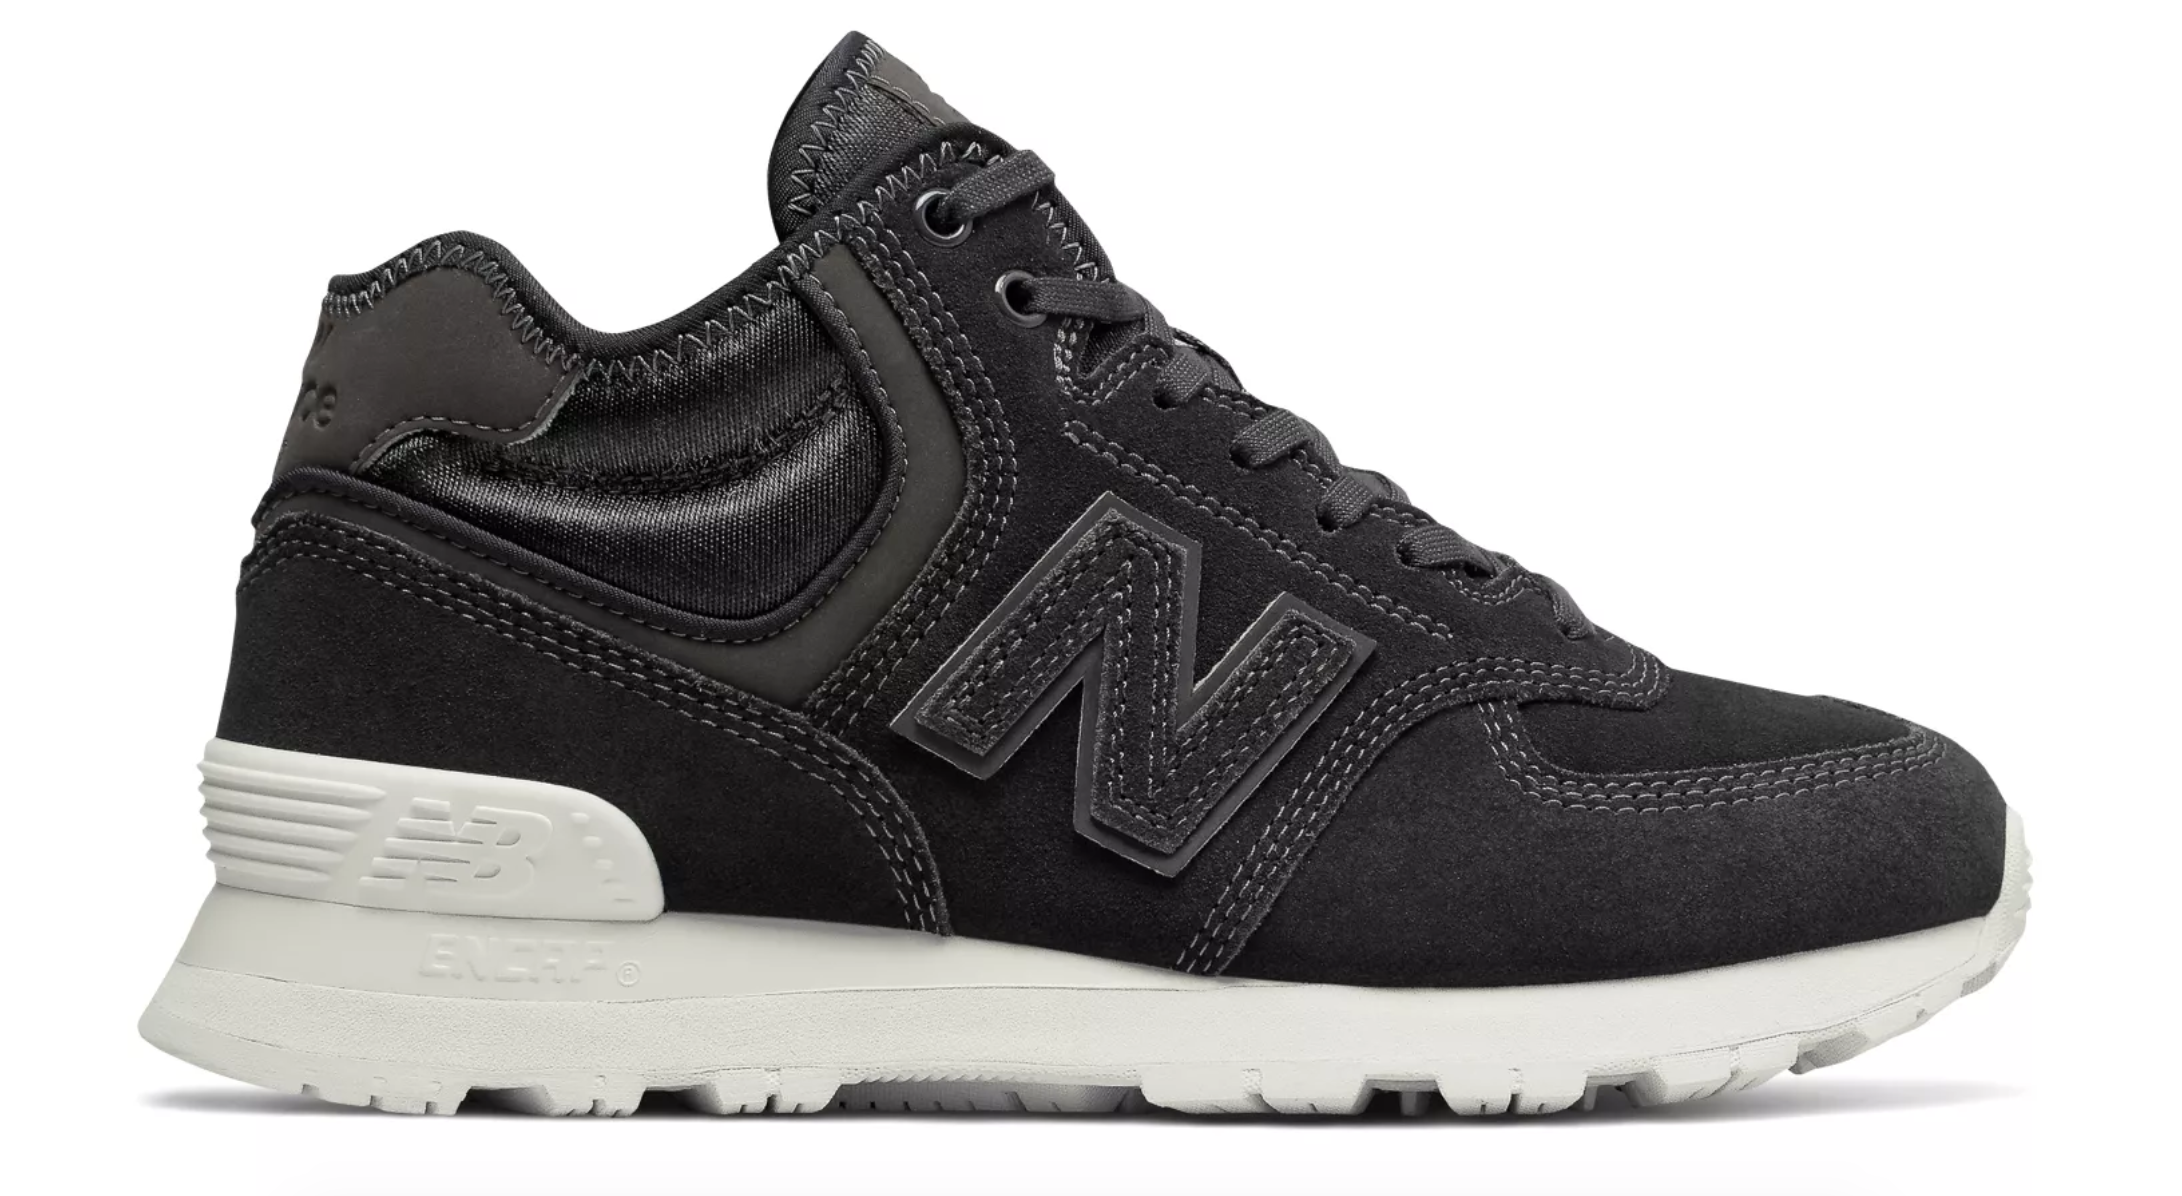 New Balance 574 Shoes - Latest Styles and Best Deals cfa34c8be